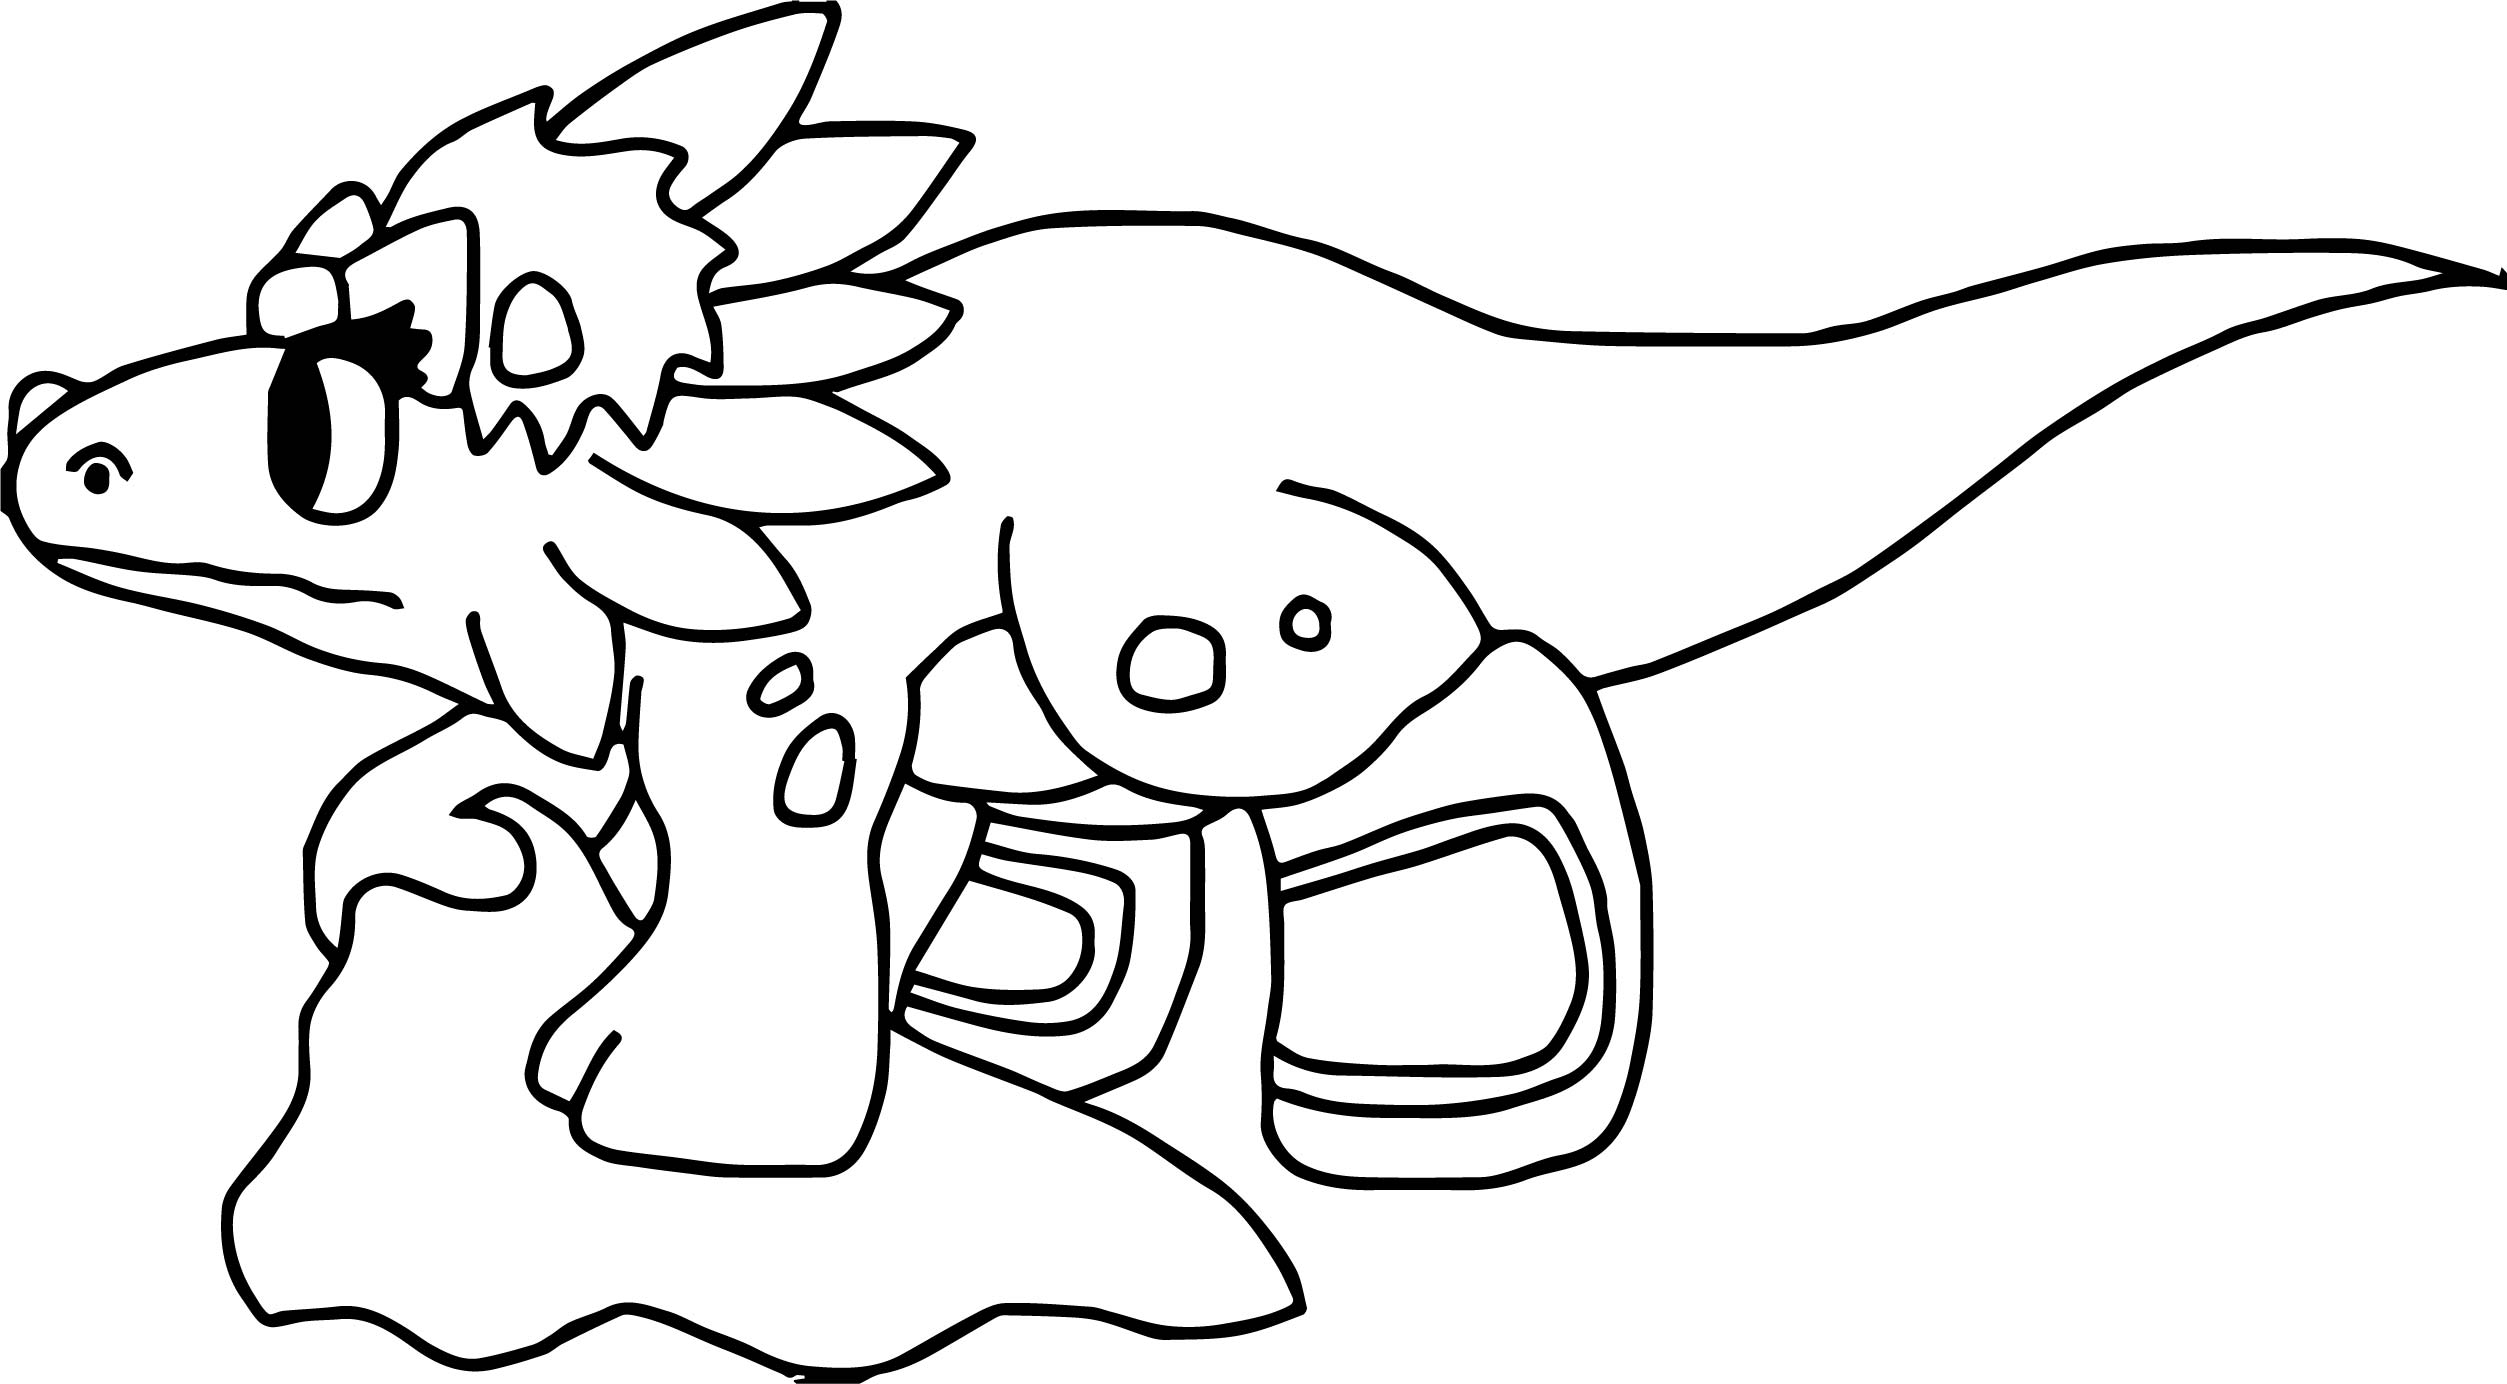 Baby bop redesign coloring page for Baby bop coloring pages